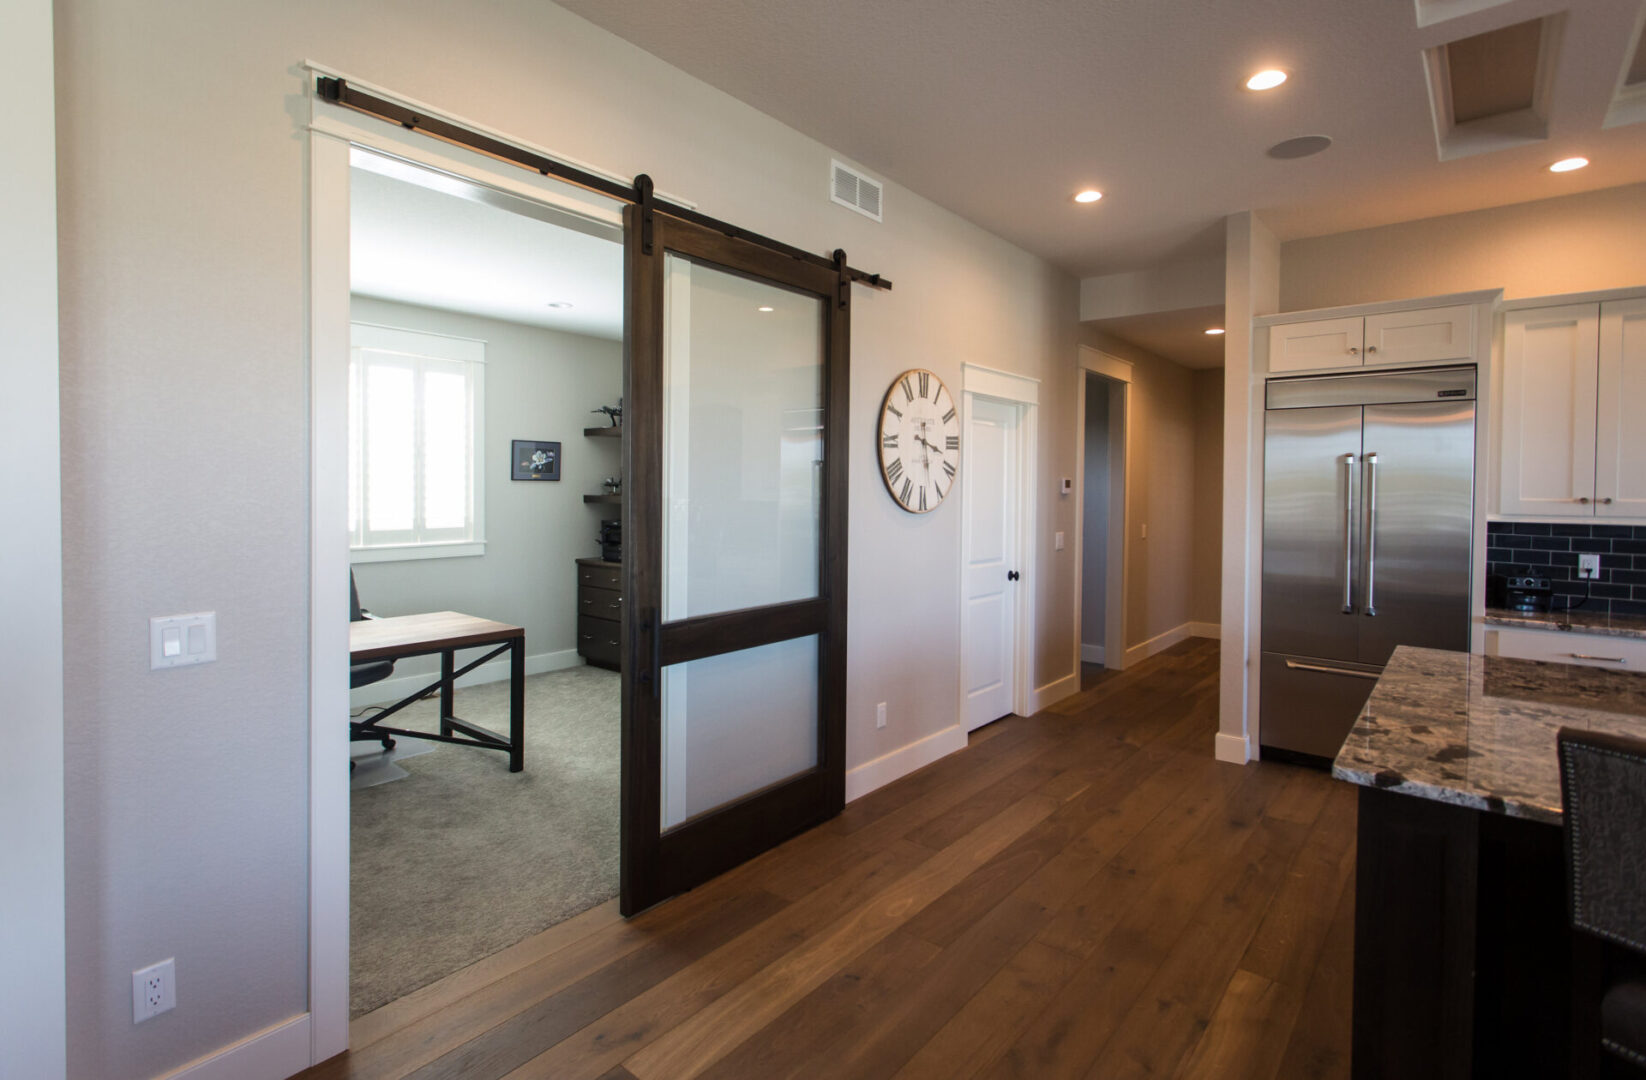 kitchen with large clock and sliding door